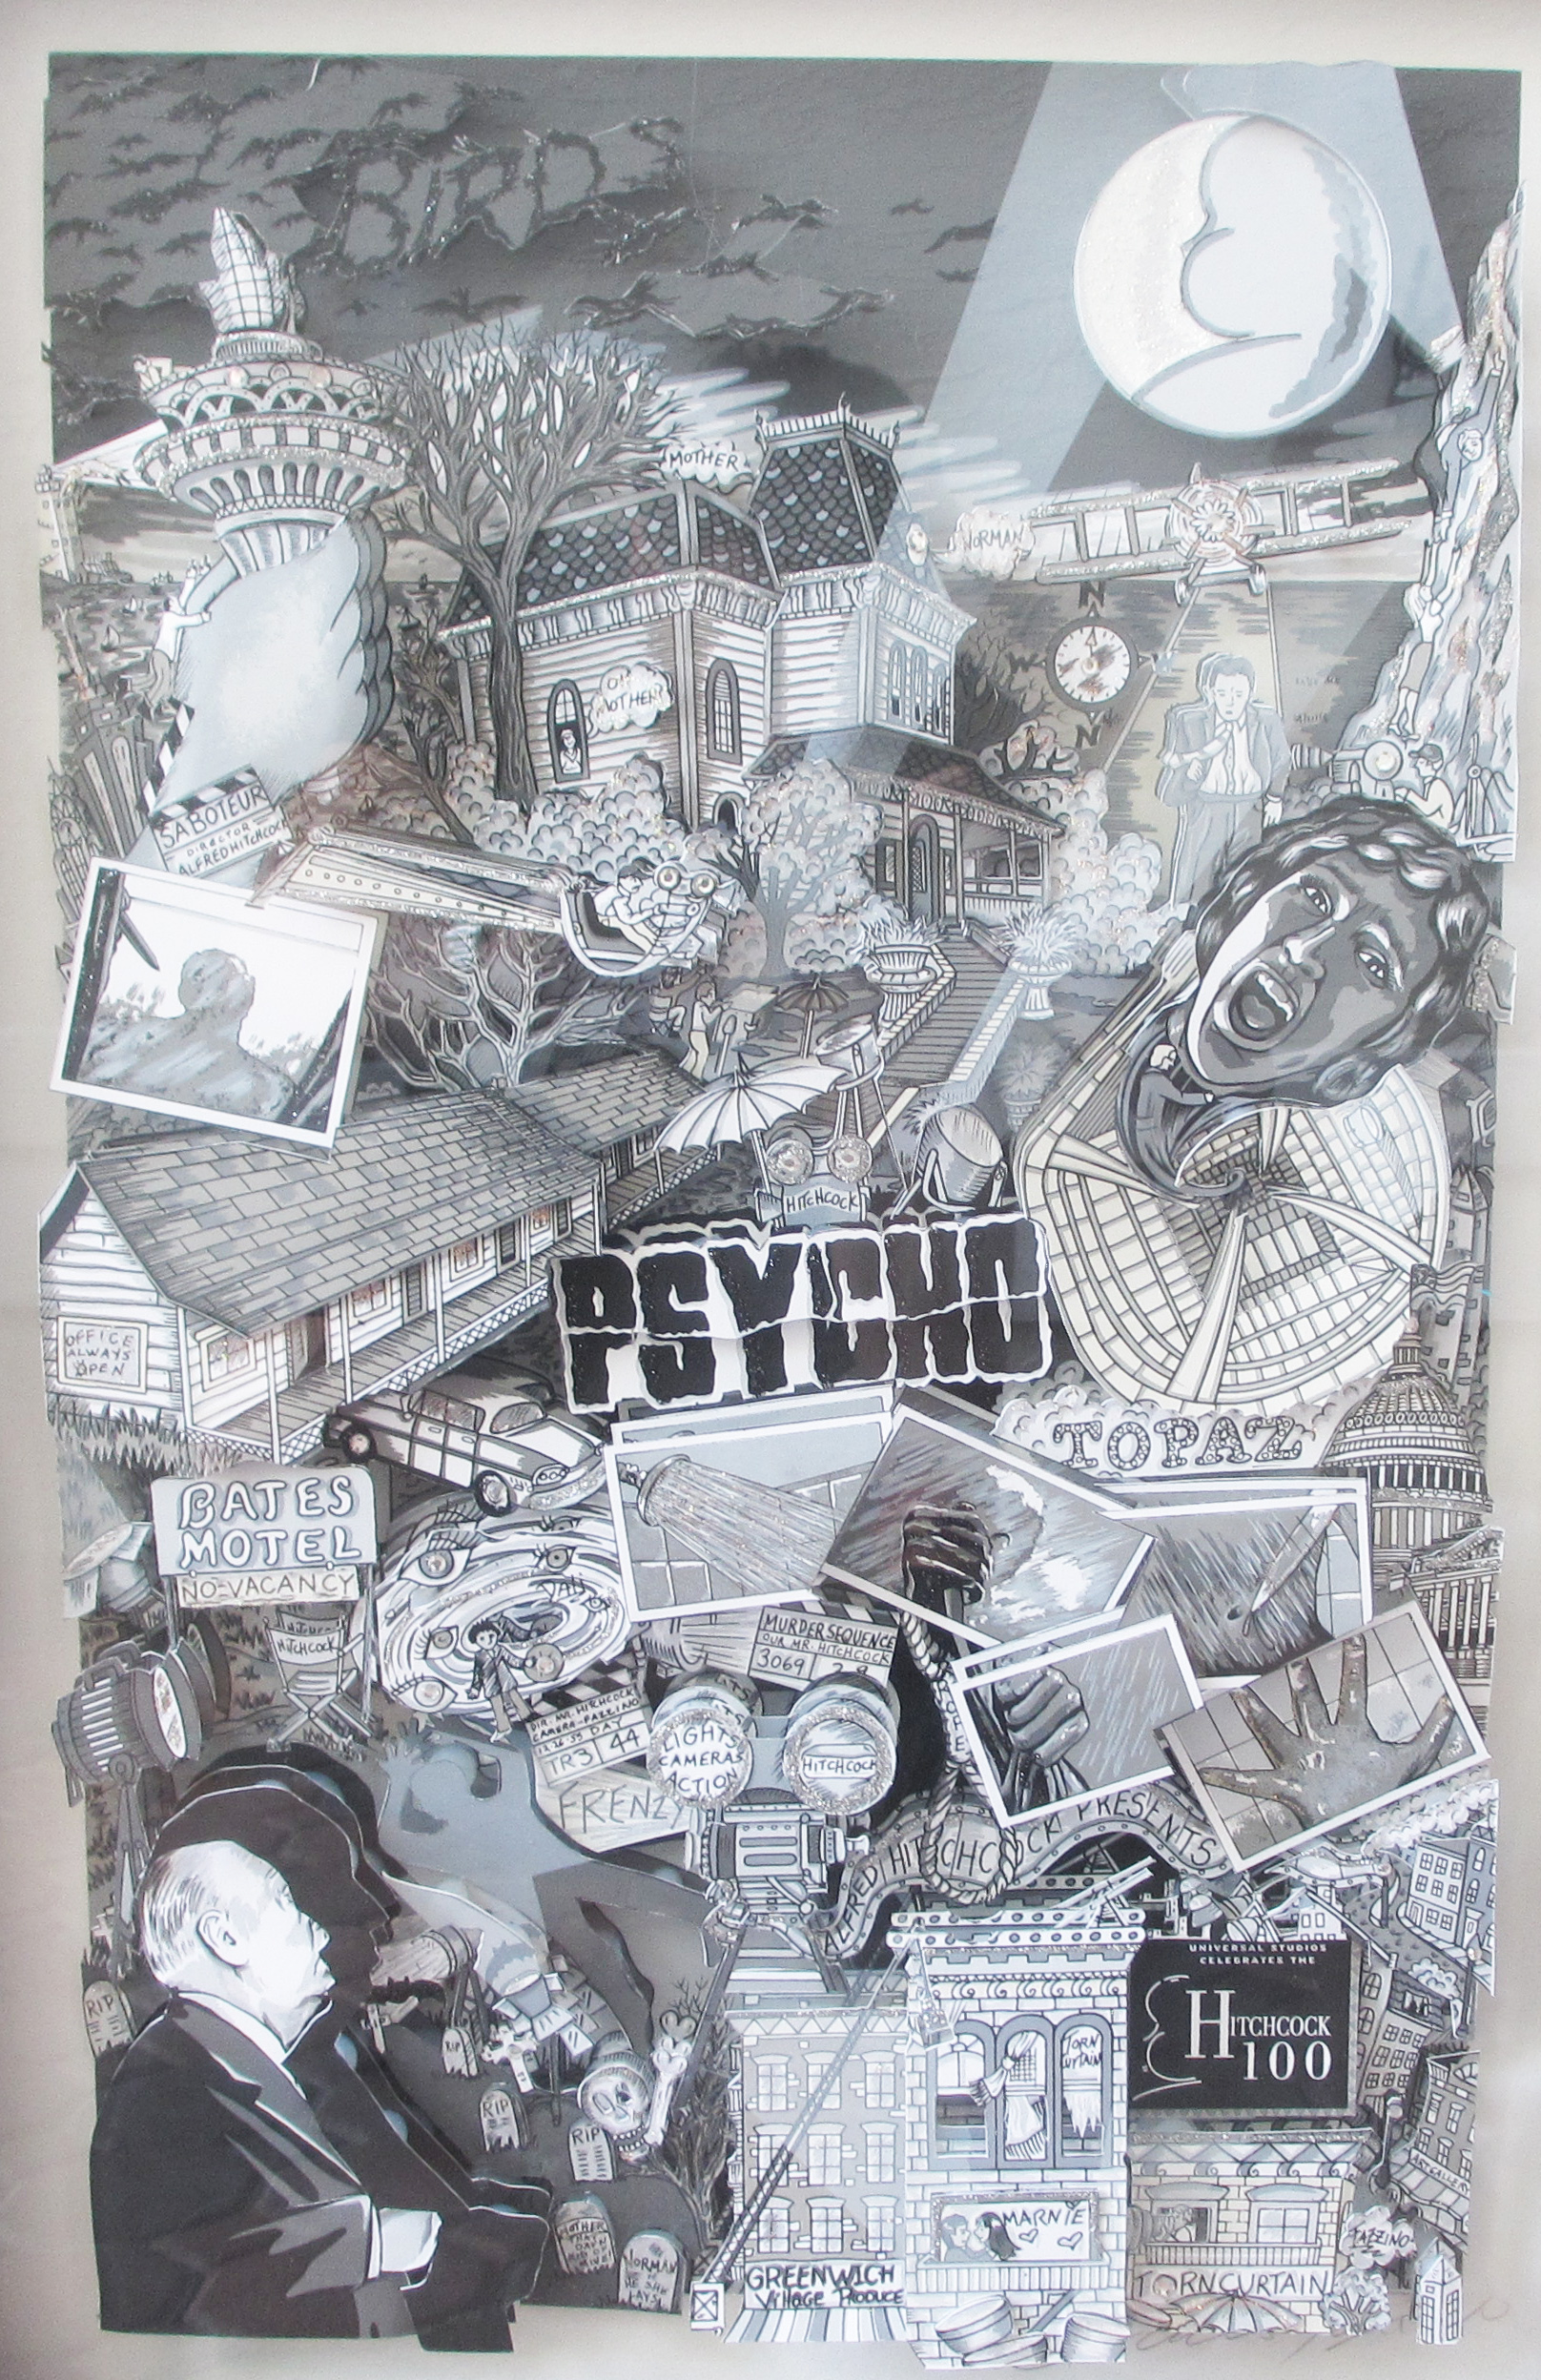 Psycho 3-D 1999 w Original Drawing on Verso